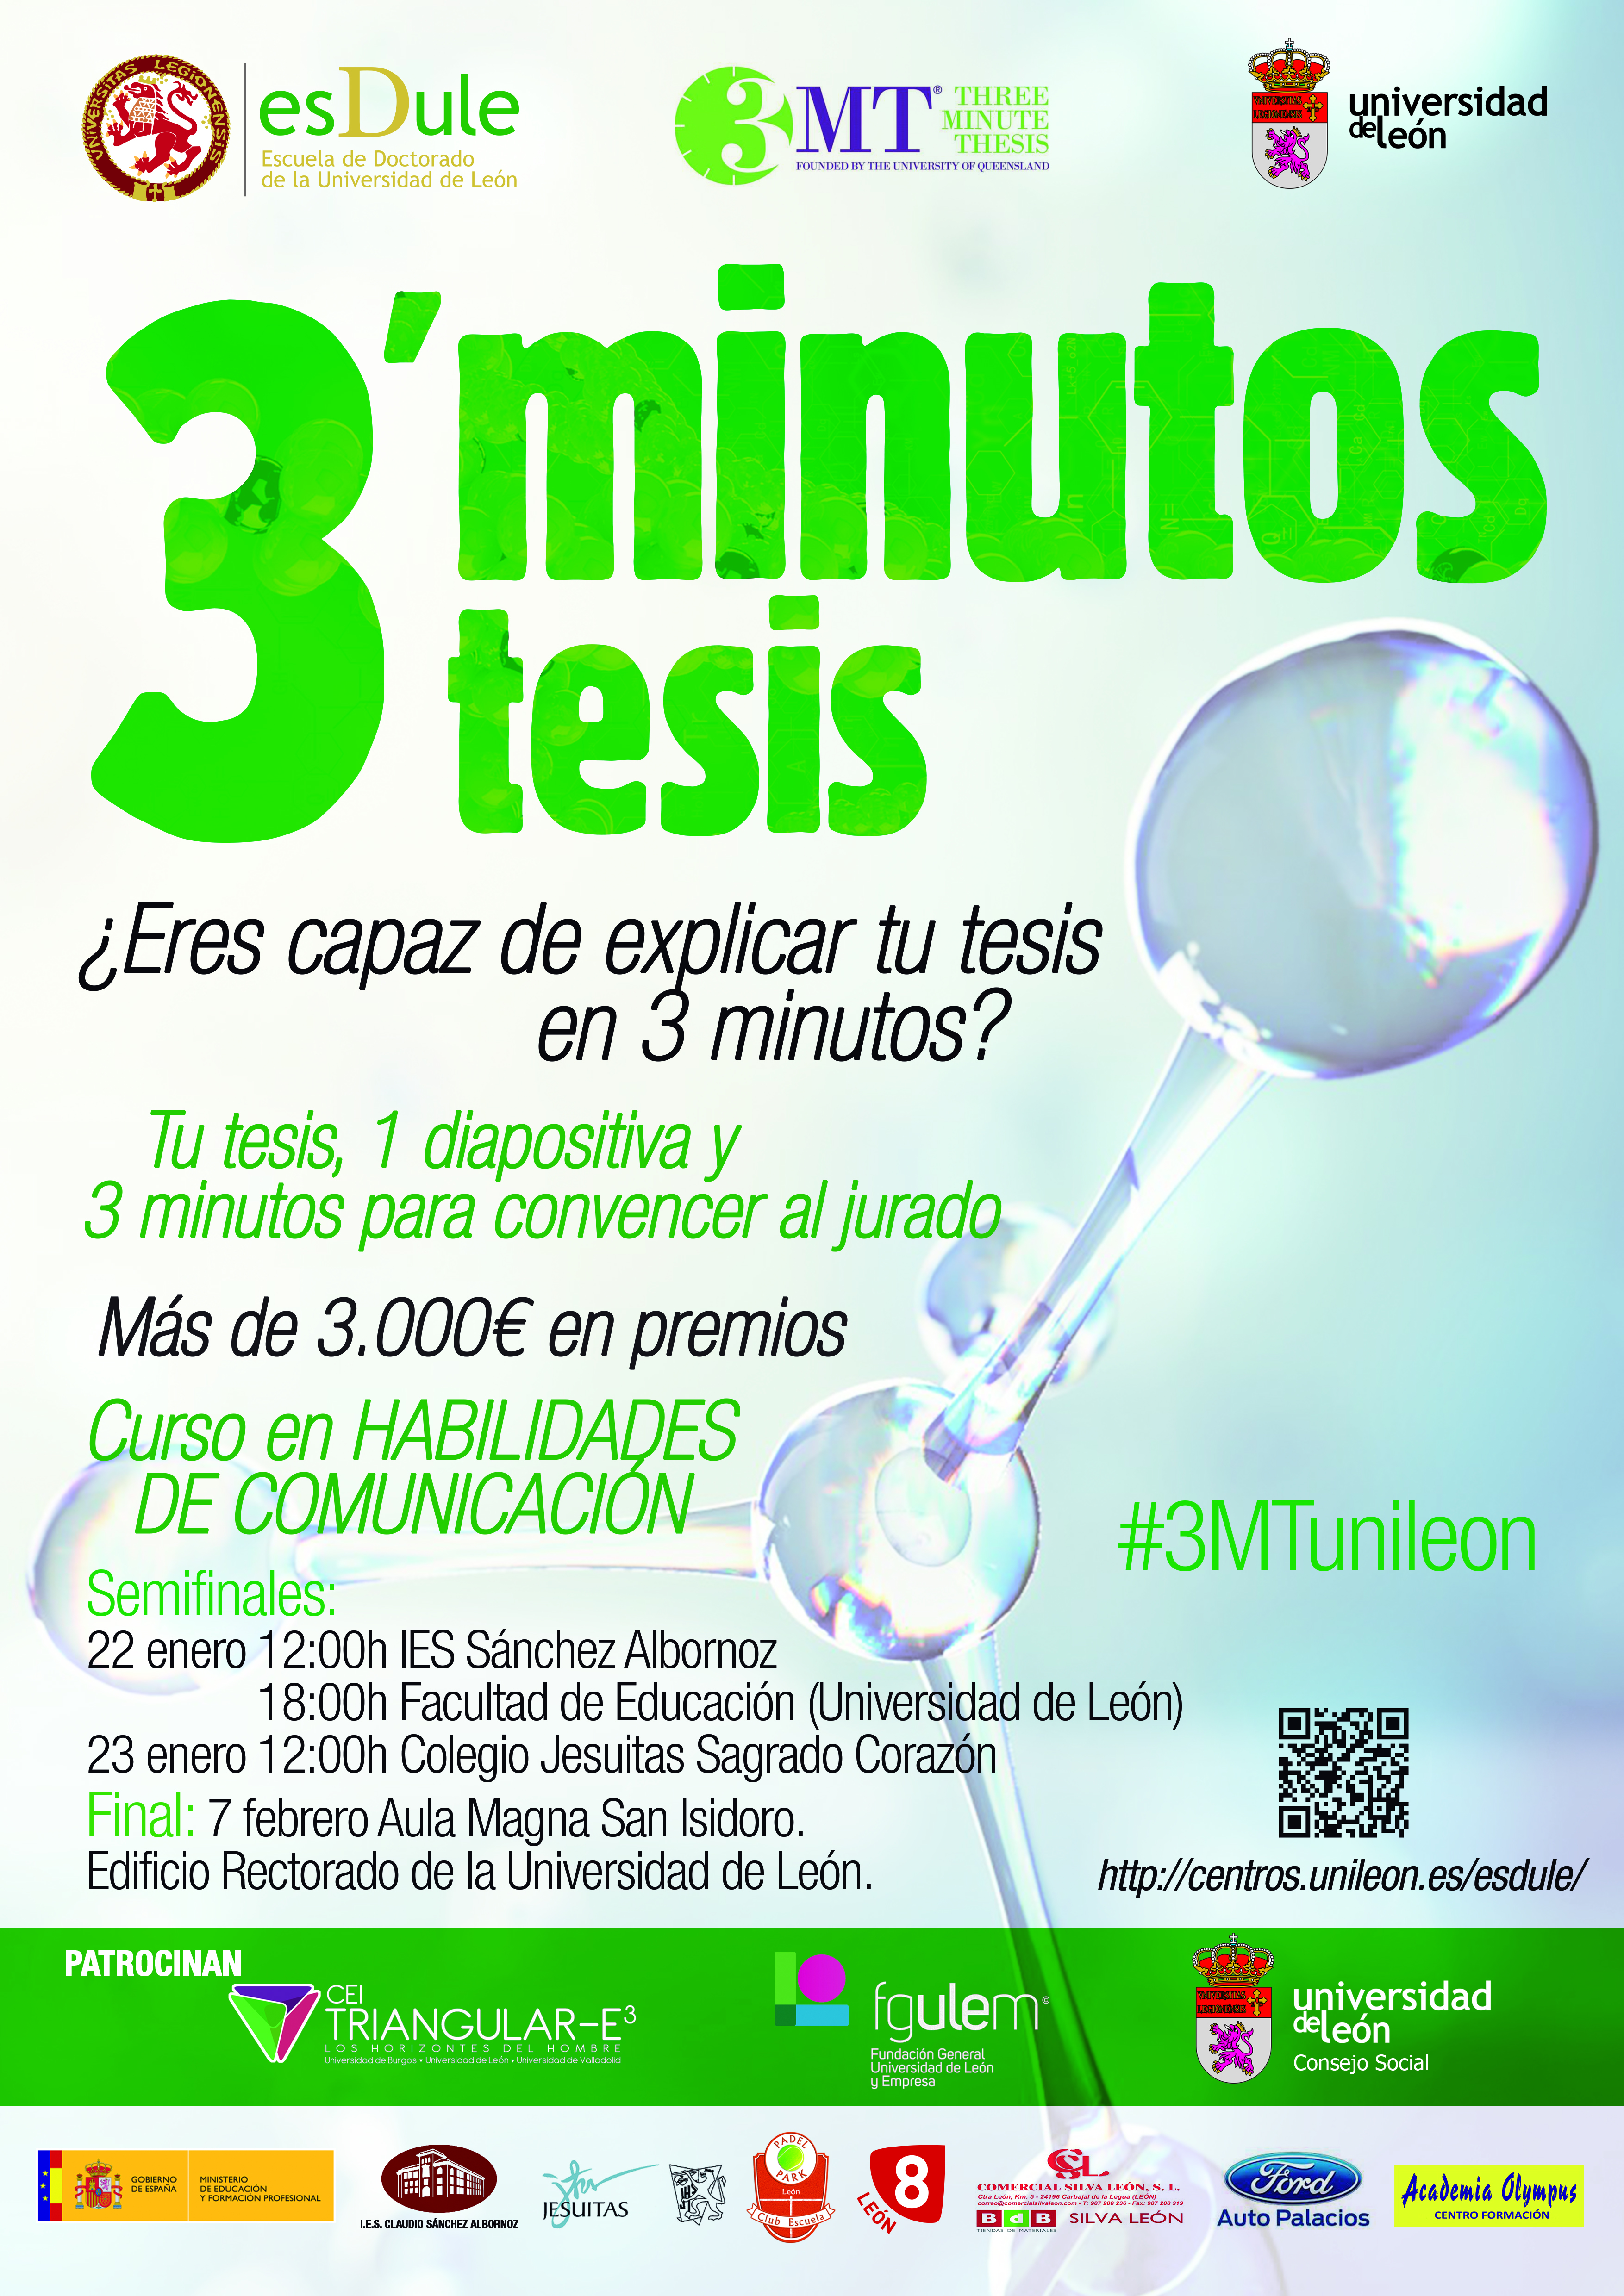 Concurso Three Minute Thesis (3MT®)- CEI Triangular-E3